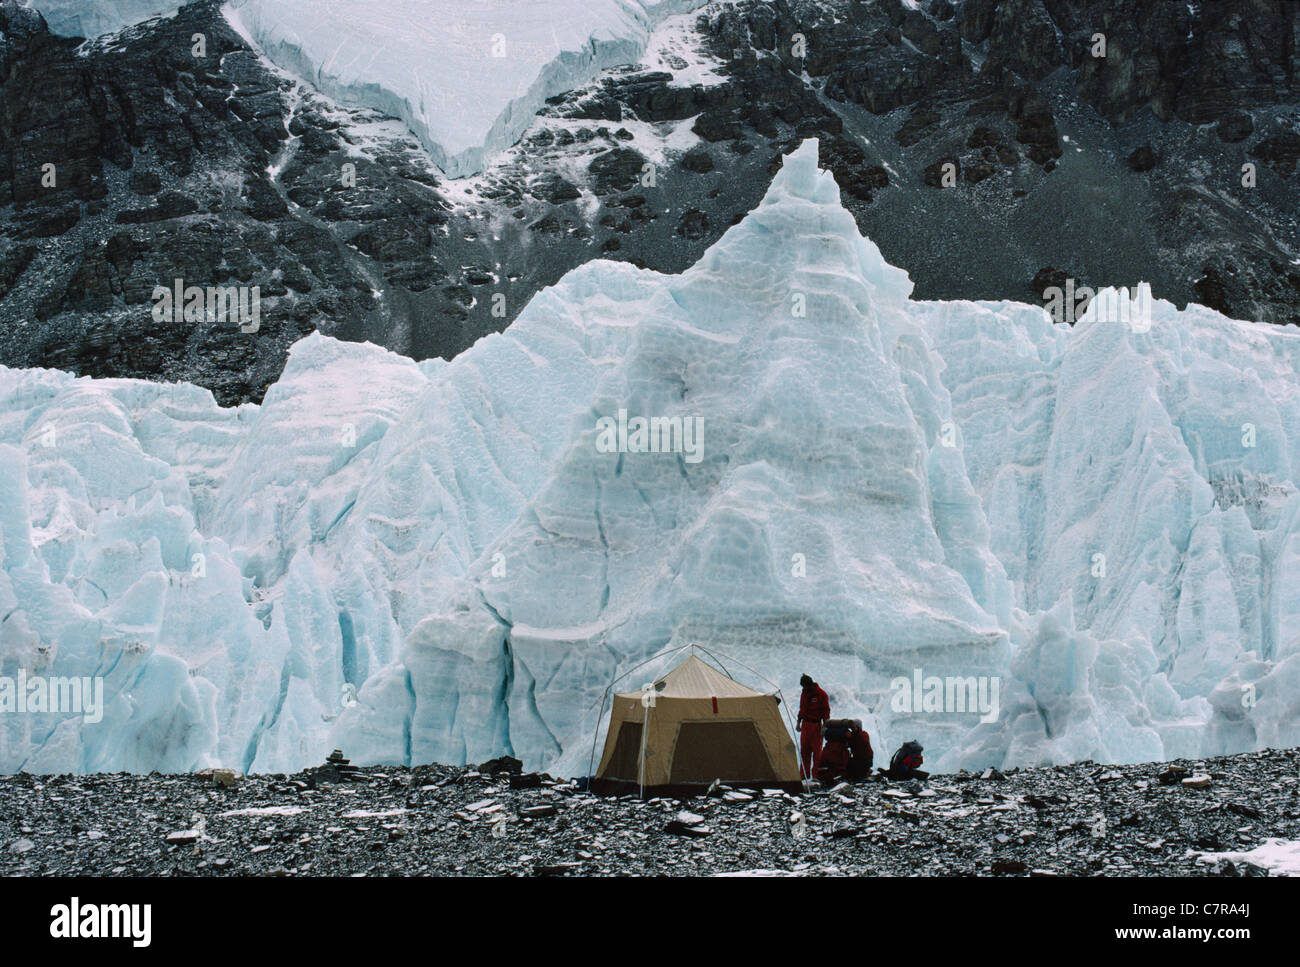 Camping site in Rongbuk Glaier enroute to Mt. Everest, Tibet, China - Stock Image